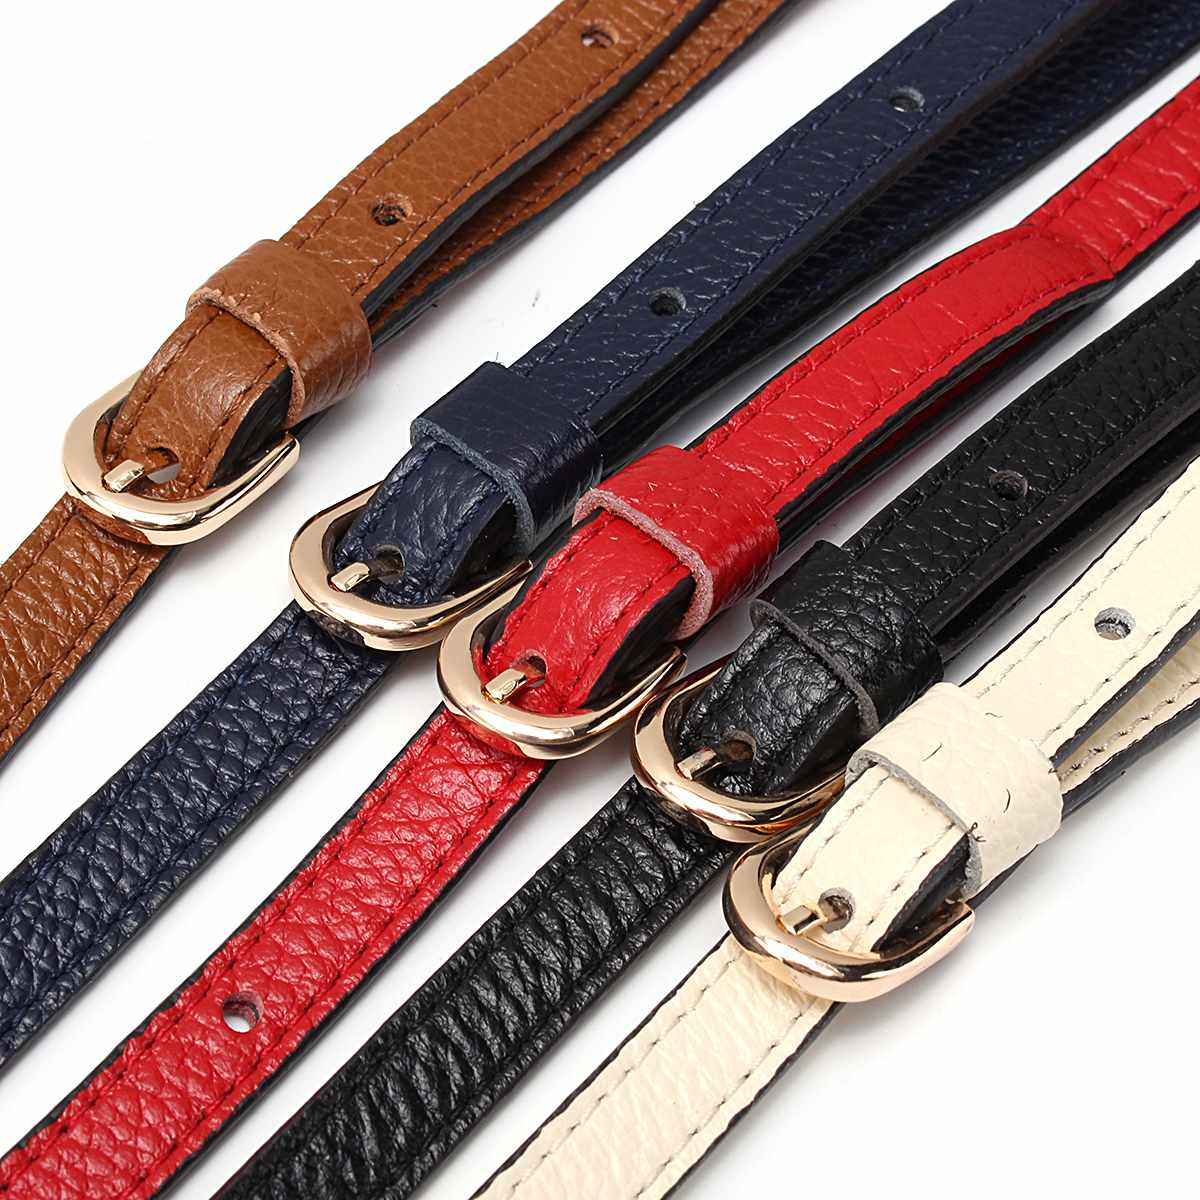 Aliexpress Cow Leather Bag Straps Replacement Diy Shoulder Belts Adjule Strap Belt For Long Handbag Accessories Parts From